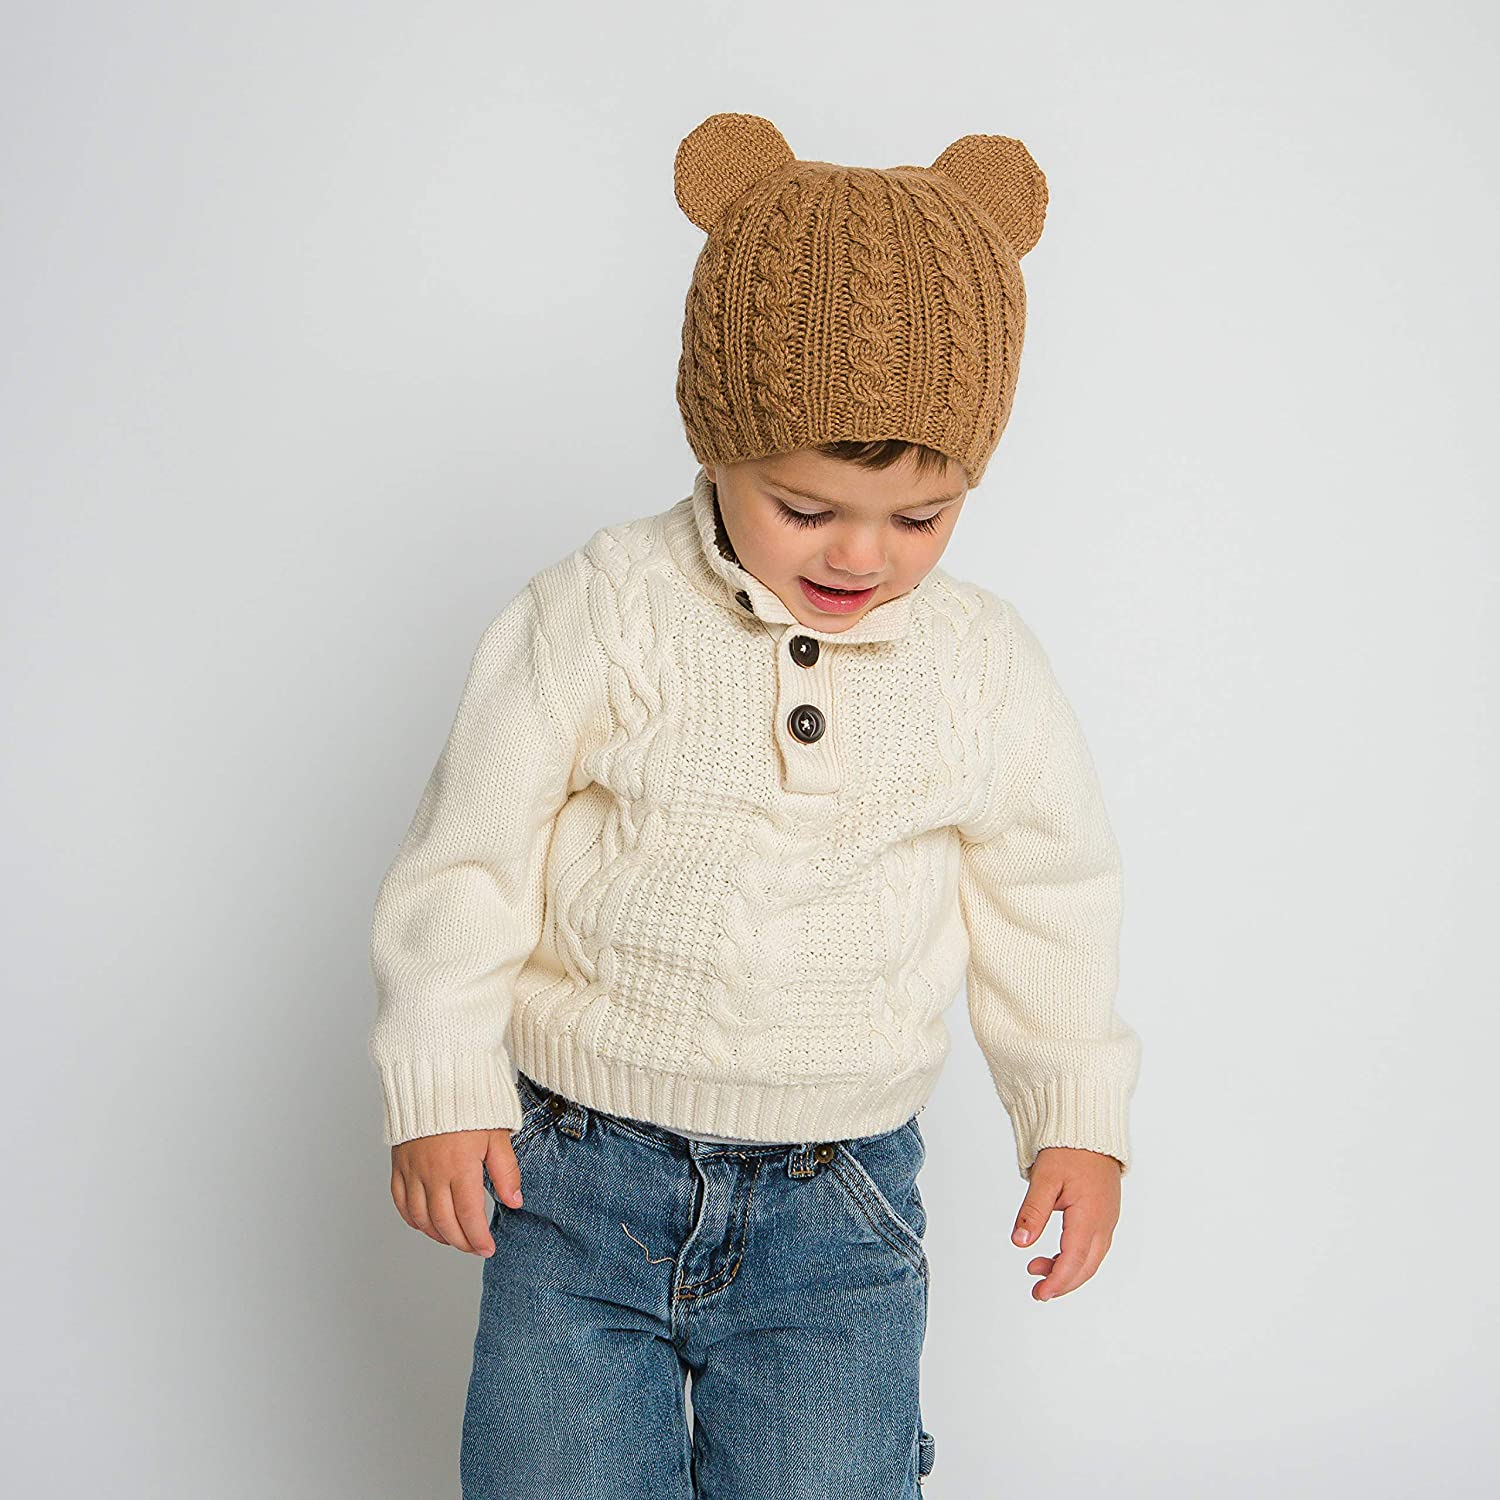 Hand-Knit 100% Organic Alpaca Wool | Pasco Bear Beanie Hat (Brown) by Surhilo | Soft, Quality, Hypoallergenic | The Perfect and Eco-Friendly Way to Keep Your Baby and Toddler Cozy and Comfortable